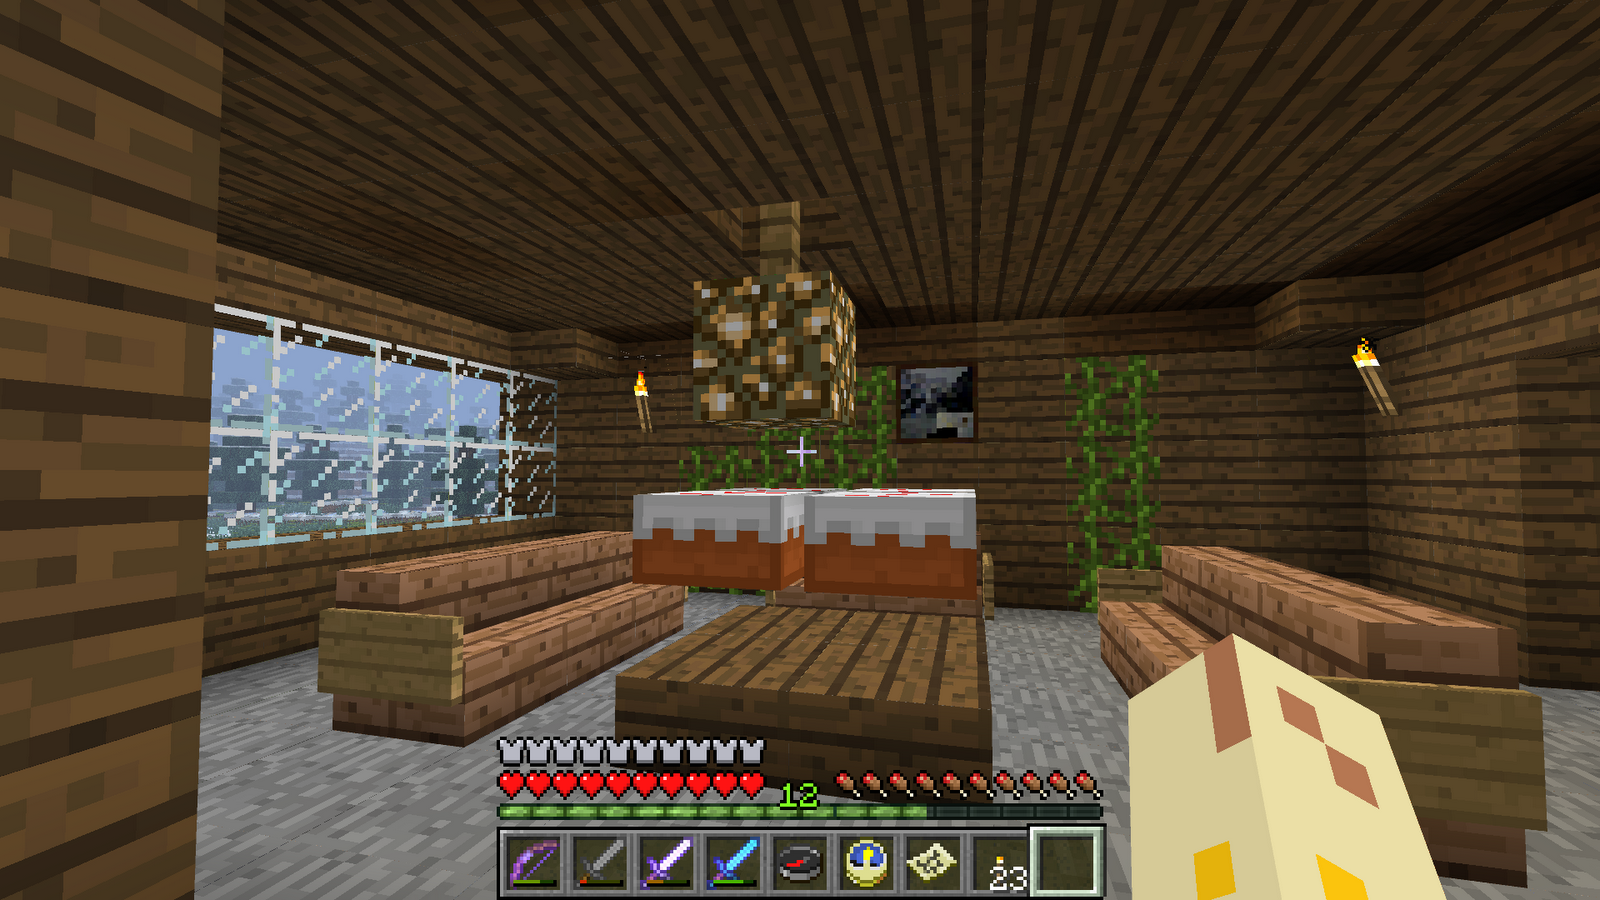 $D@nik's Day$ : My awesome minecraft house!!!!